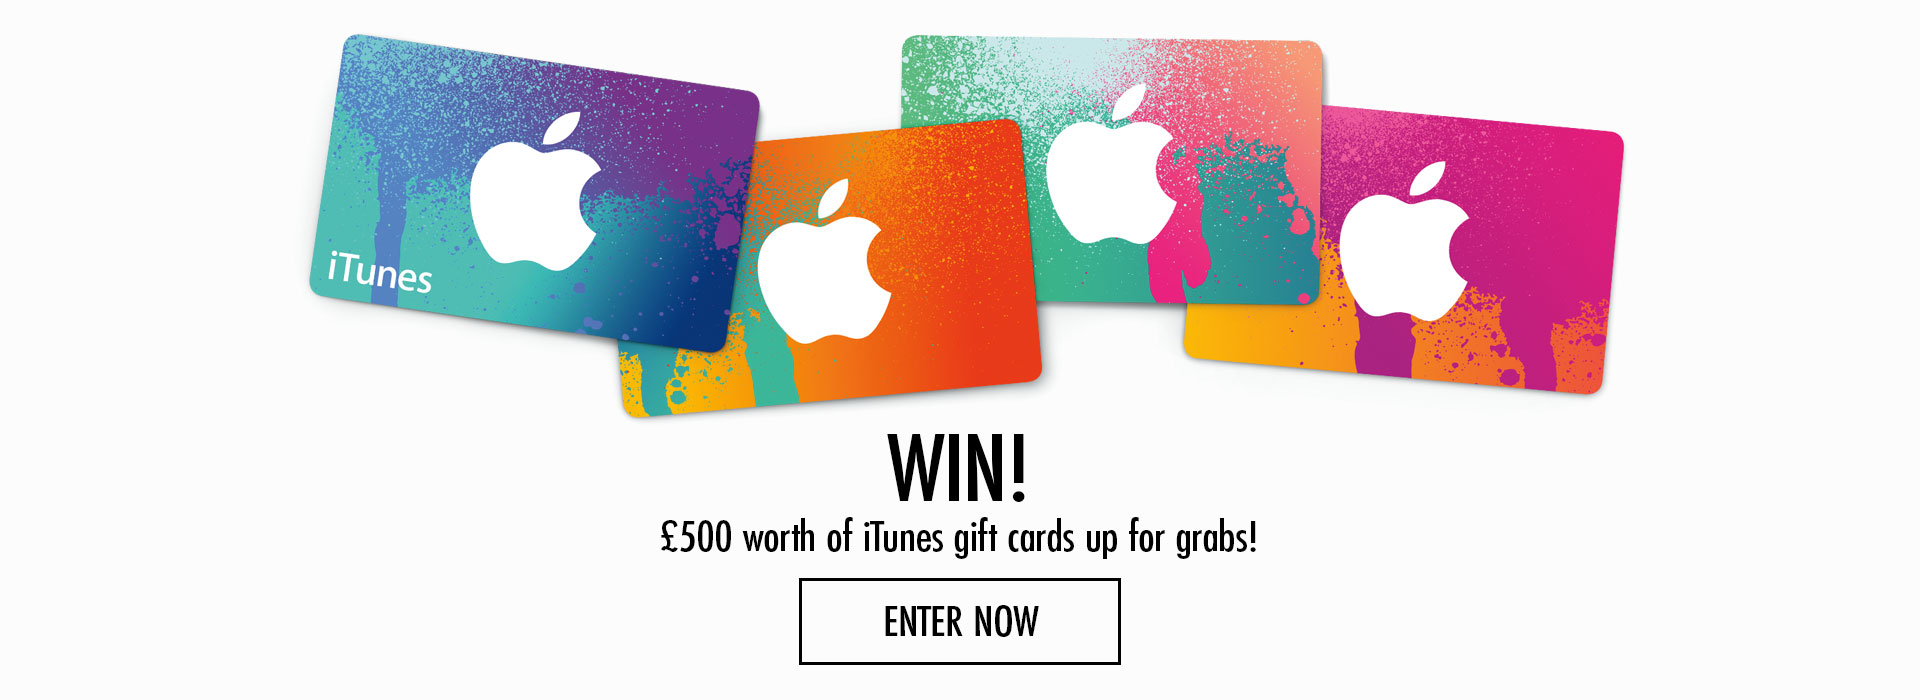 iTunes Competition